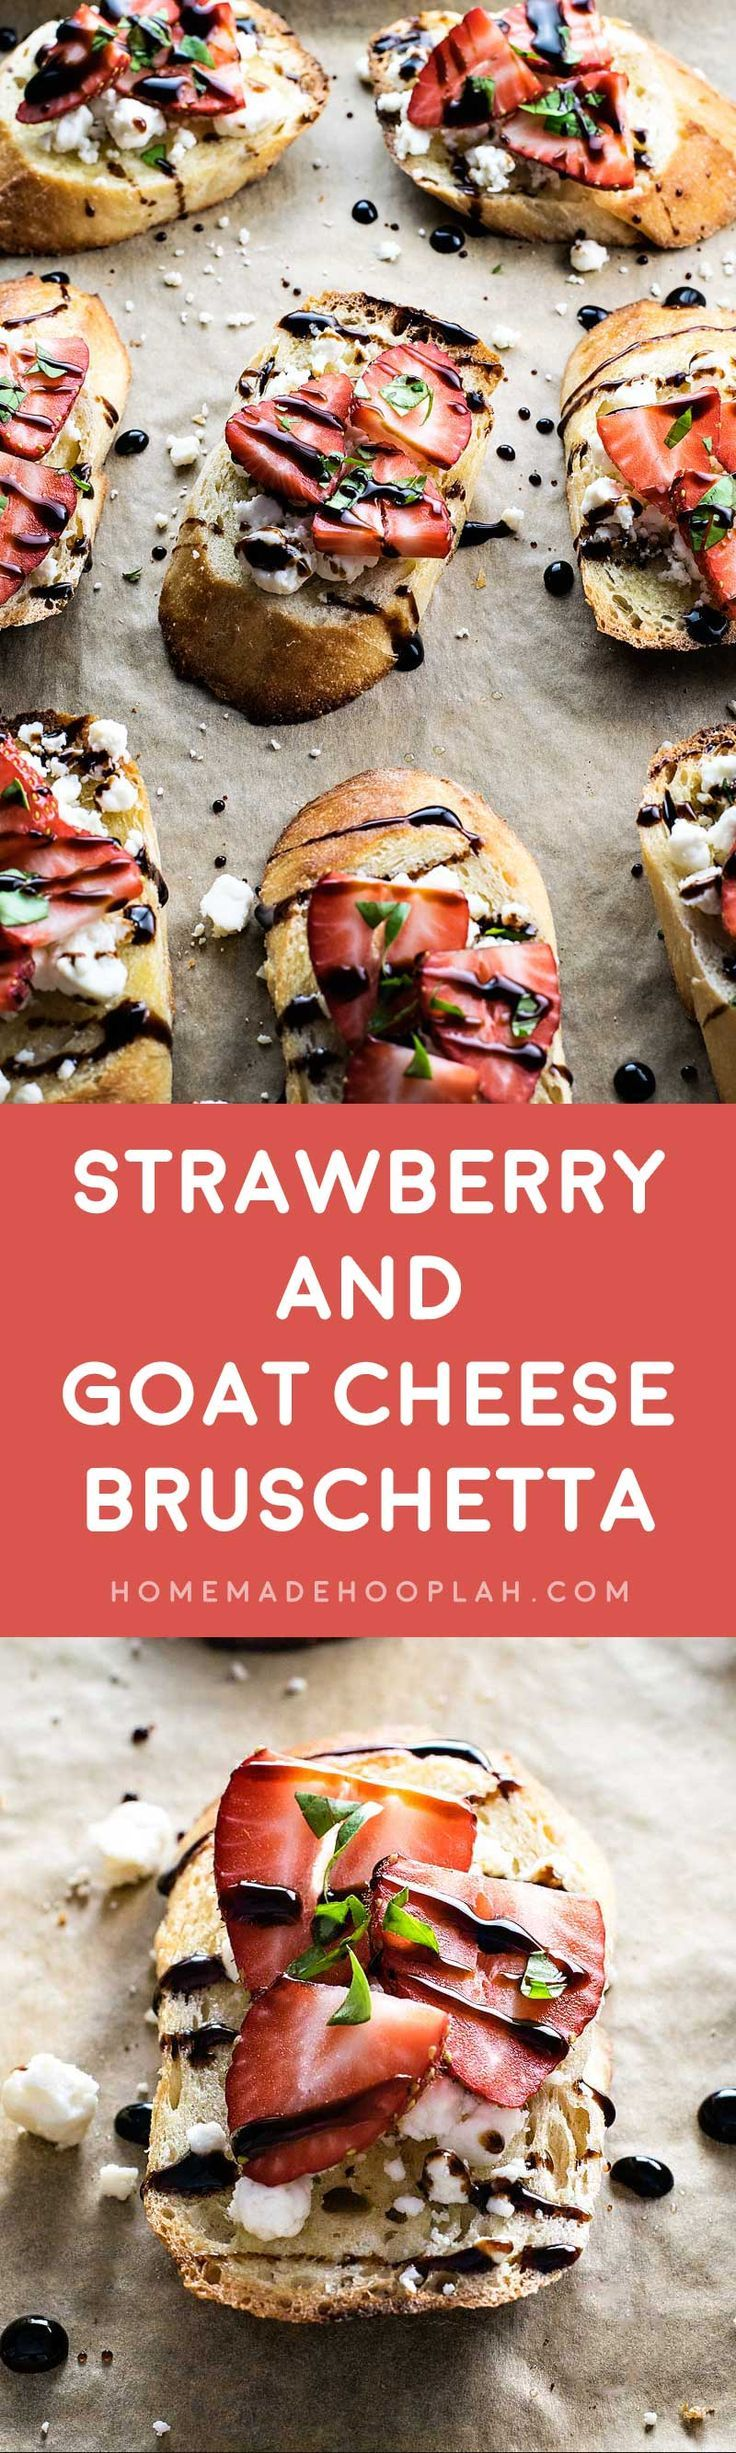 Strawberry and Goat Cheese Bruschetta! Get ready for summer with this festive appetizer! Sweet strawberries, tart balsamic, flavorful basil, and tangy goat cheese, all on a comforting baguette.